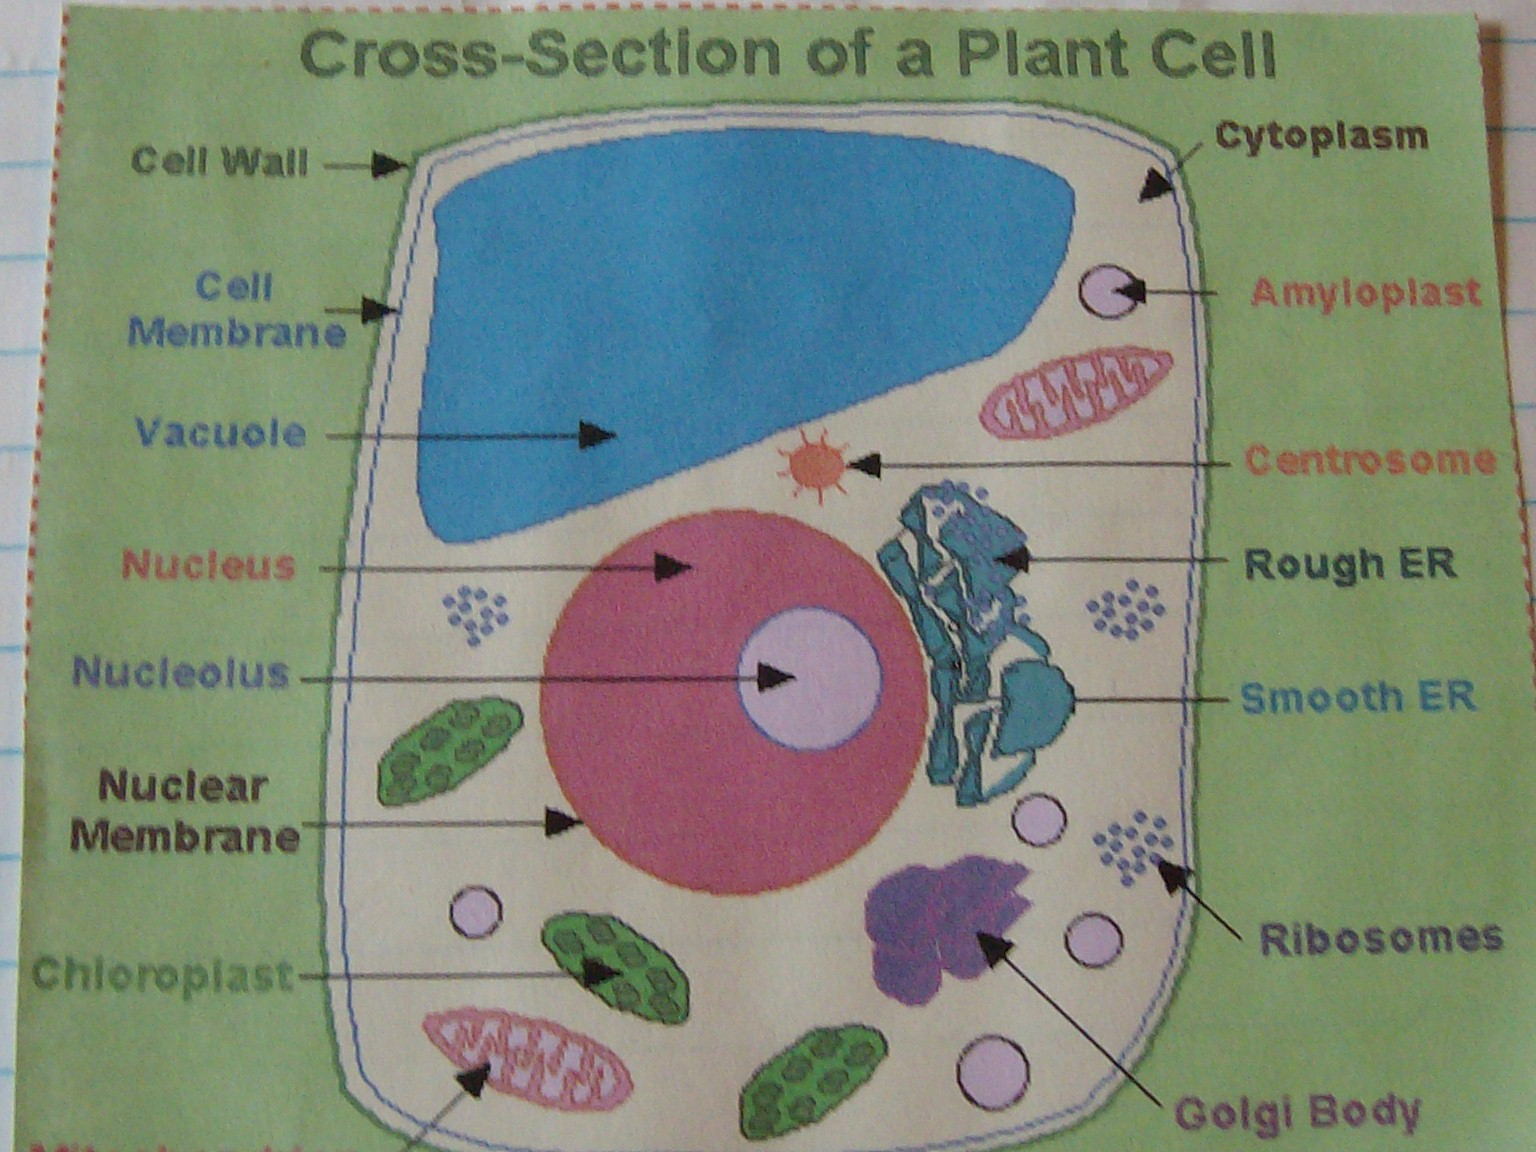 Plant Cells Made of Clay http://cabininthewoods-diane.blogspot.com/2011/04/little-science-anyone.html